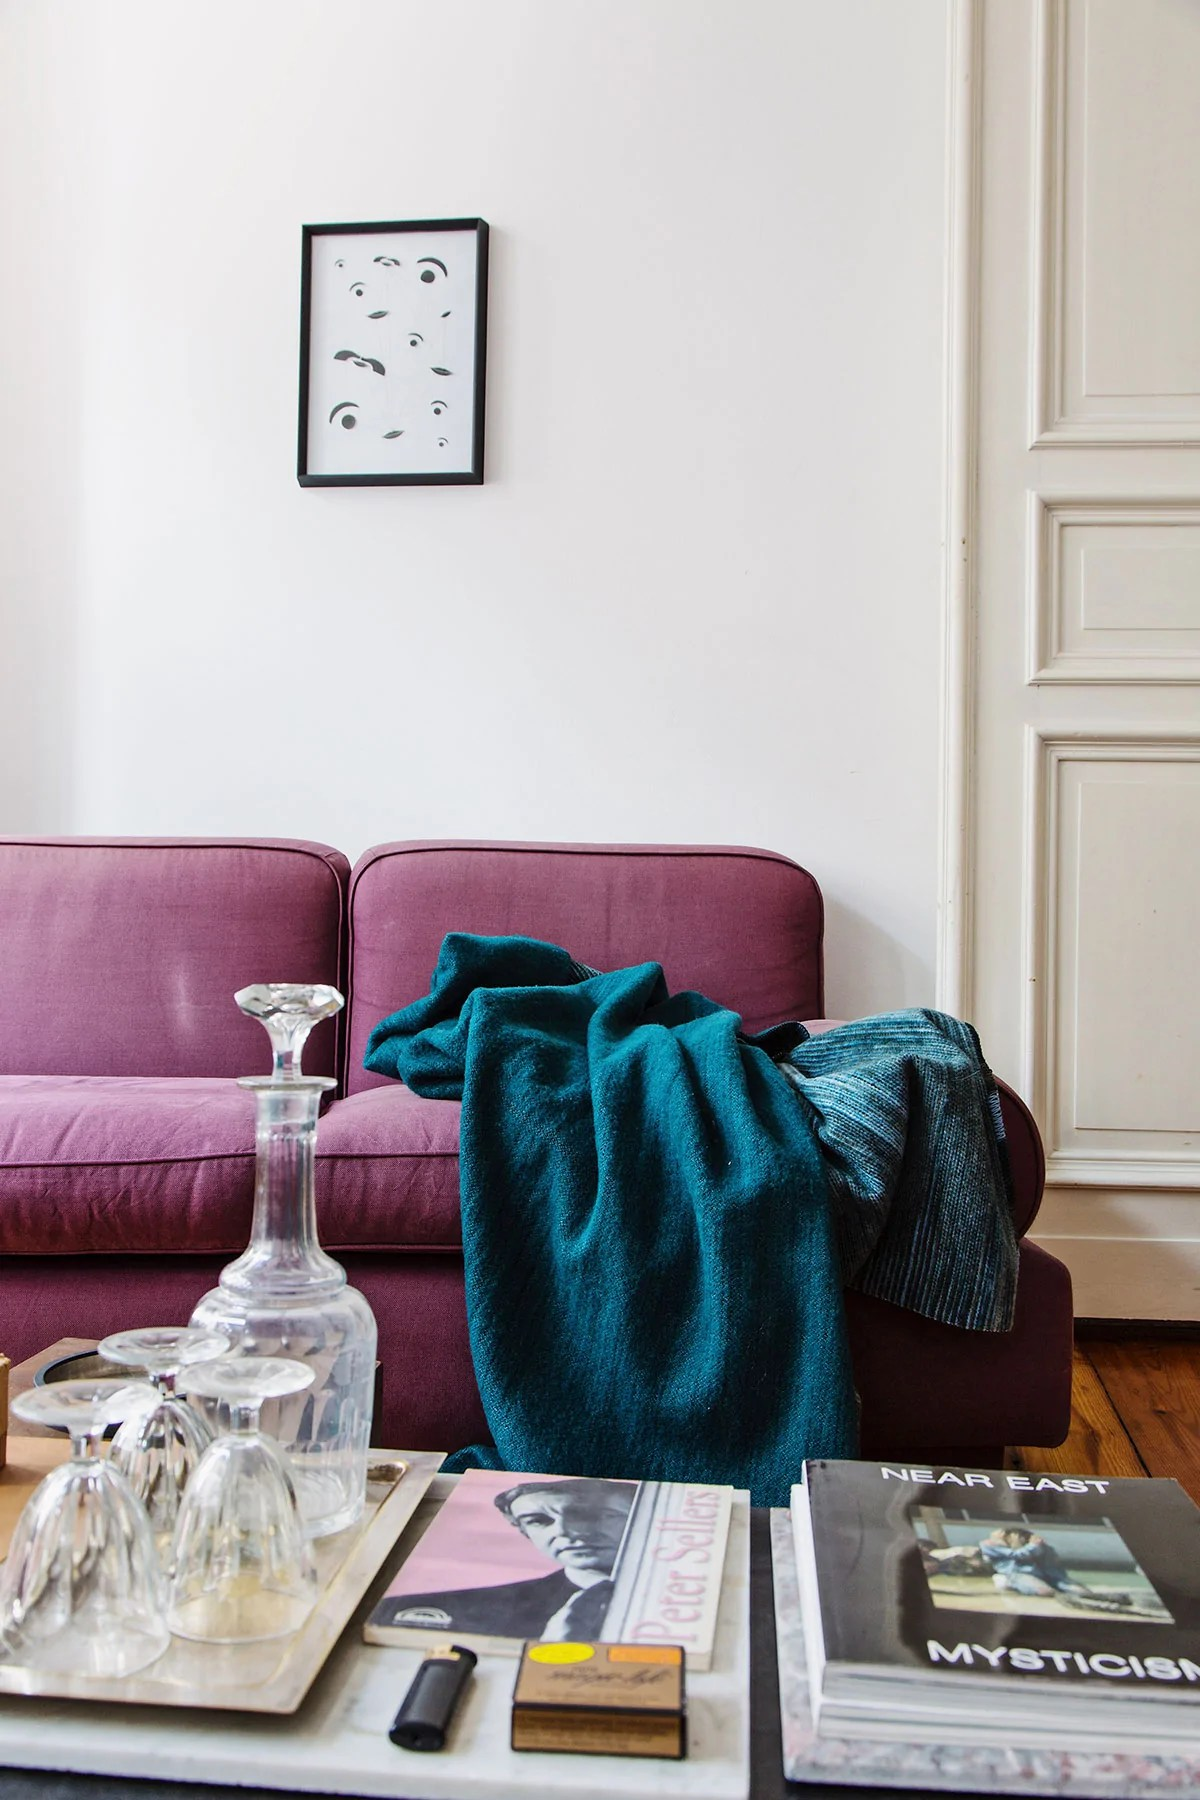 At Home With Cabinet Maker Ilias Lefas Interior Design Inspiration Perelic Woolen Goods